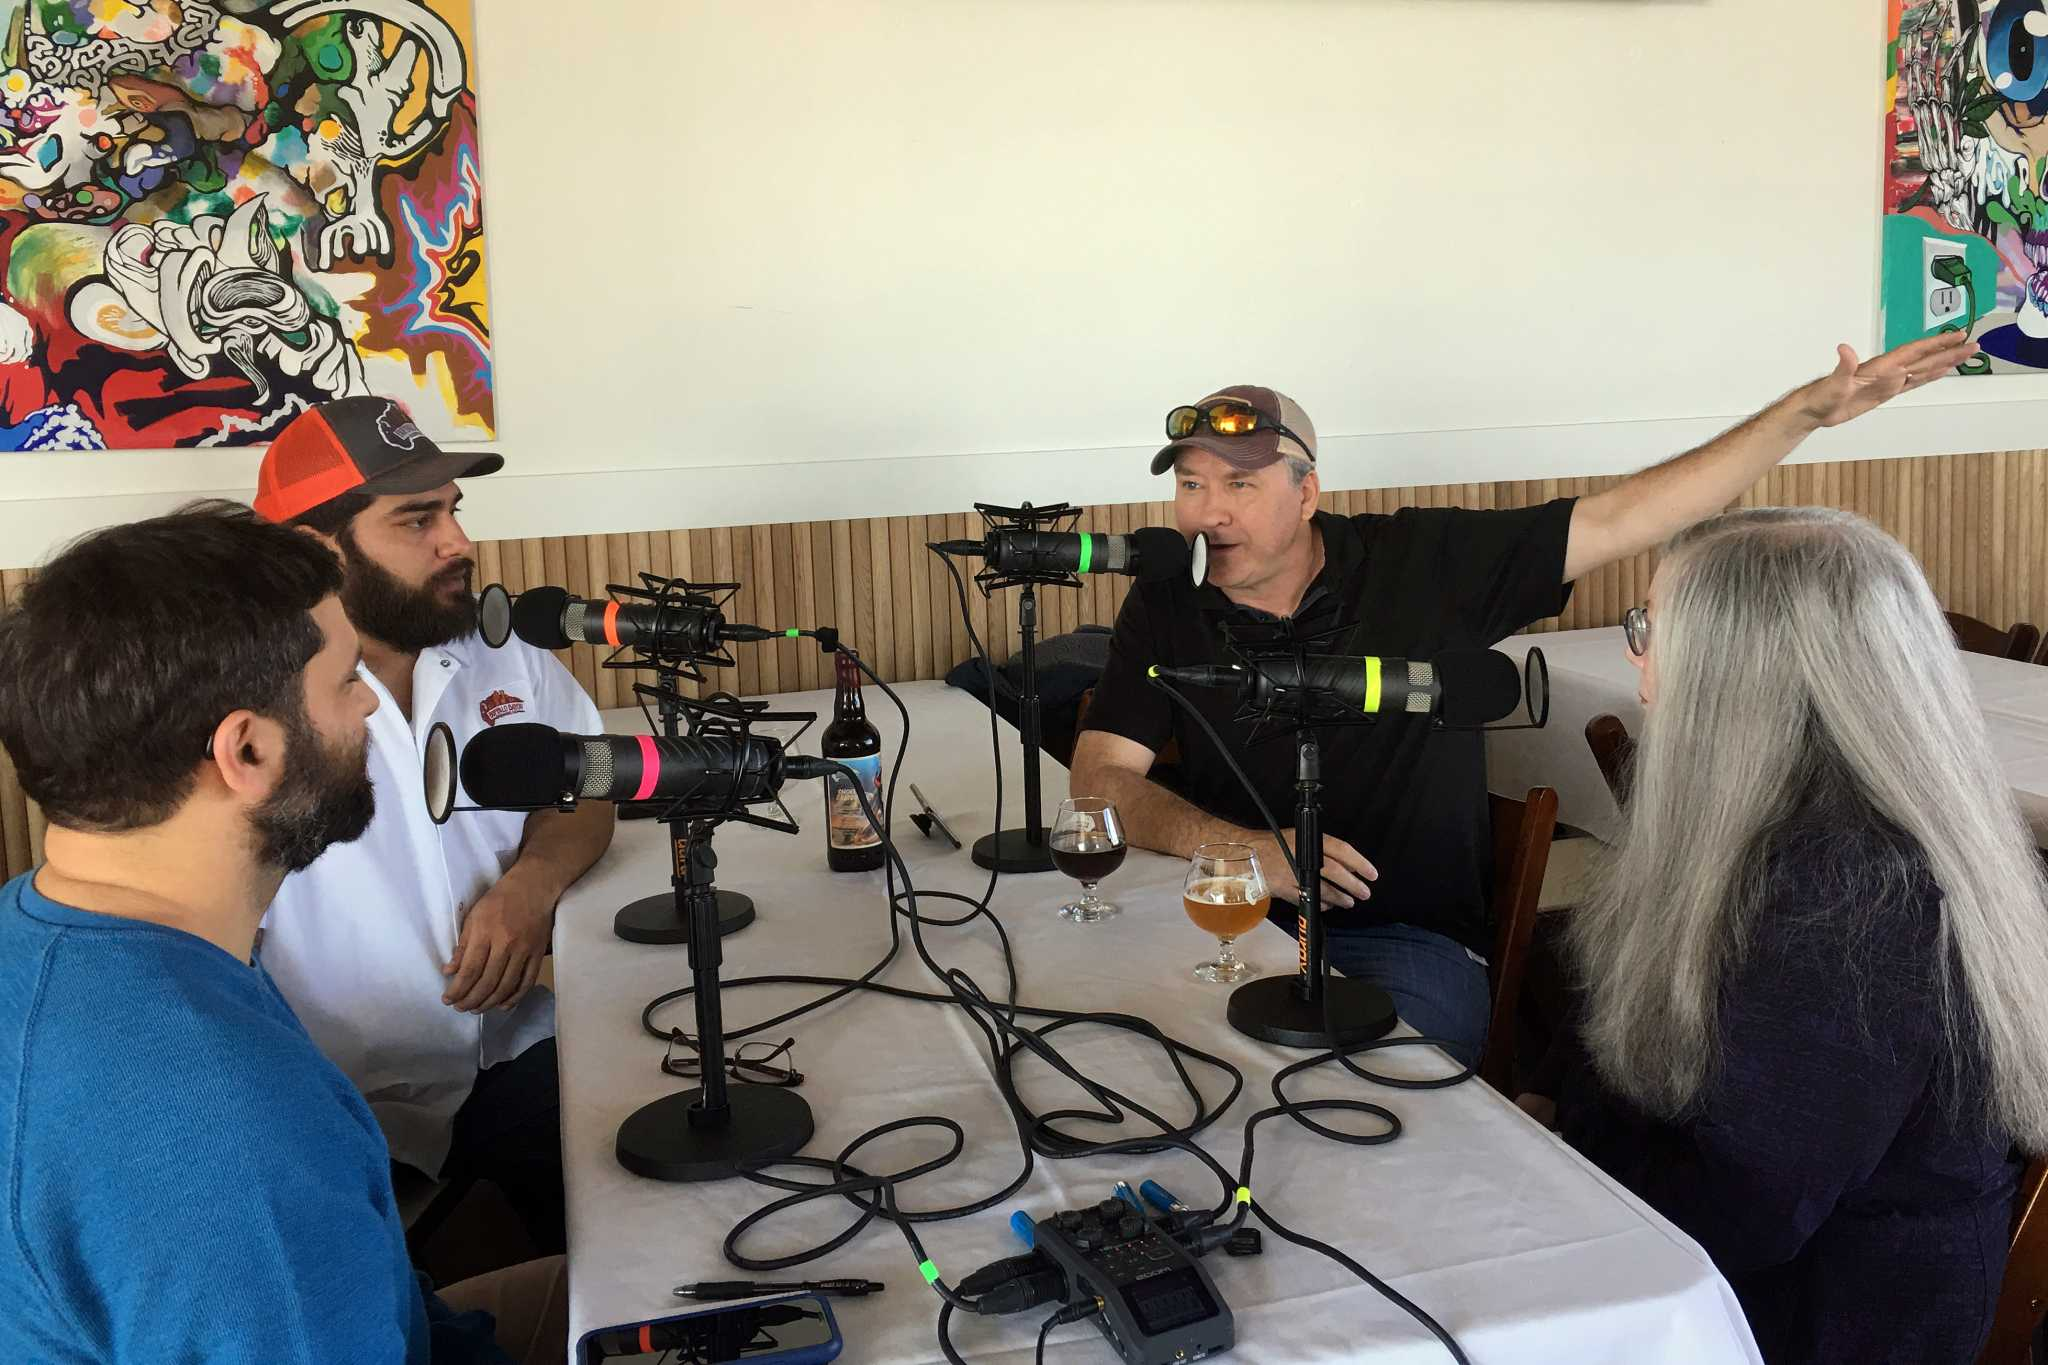 Listen: A new amusement park for beer and barbecue nerds